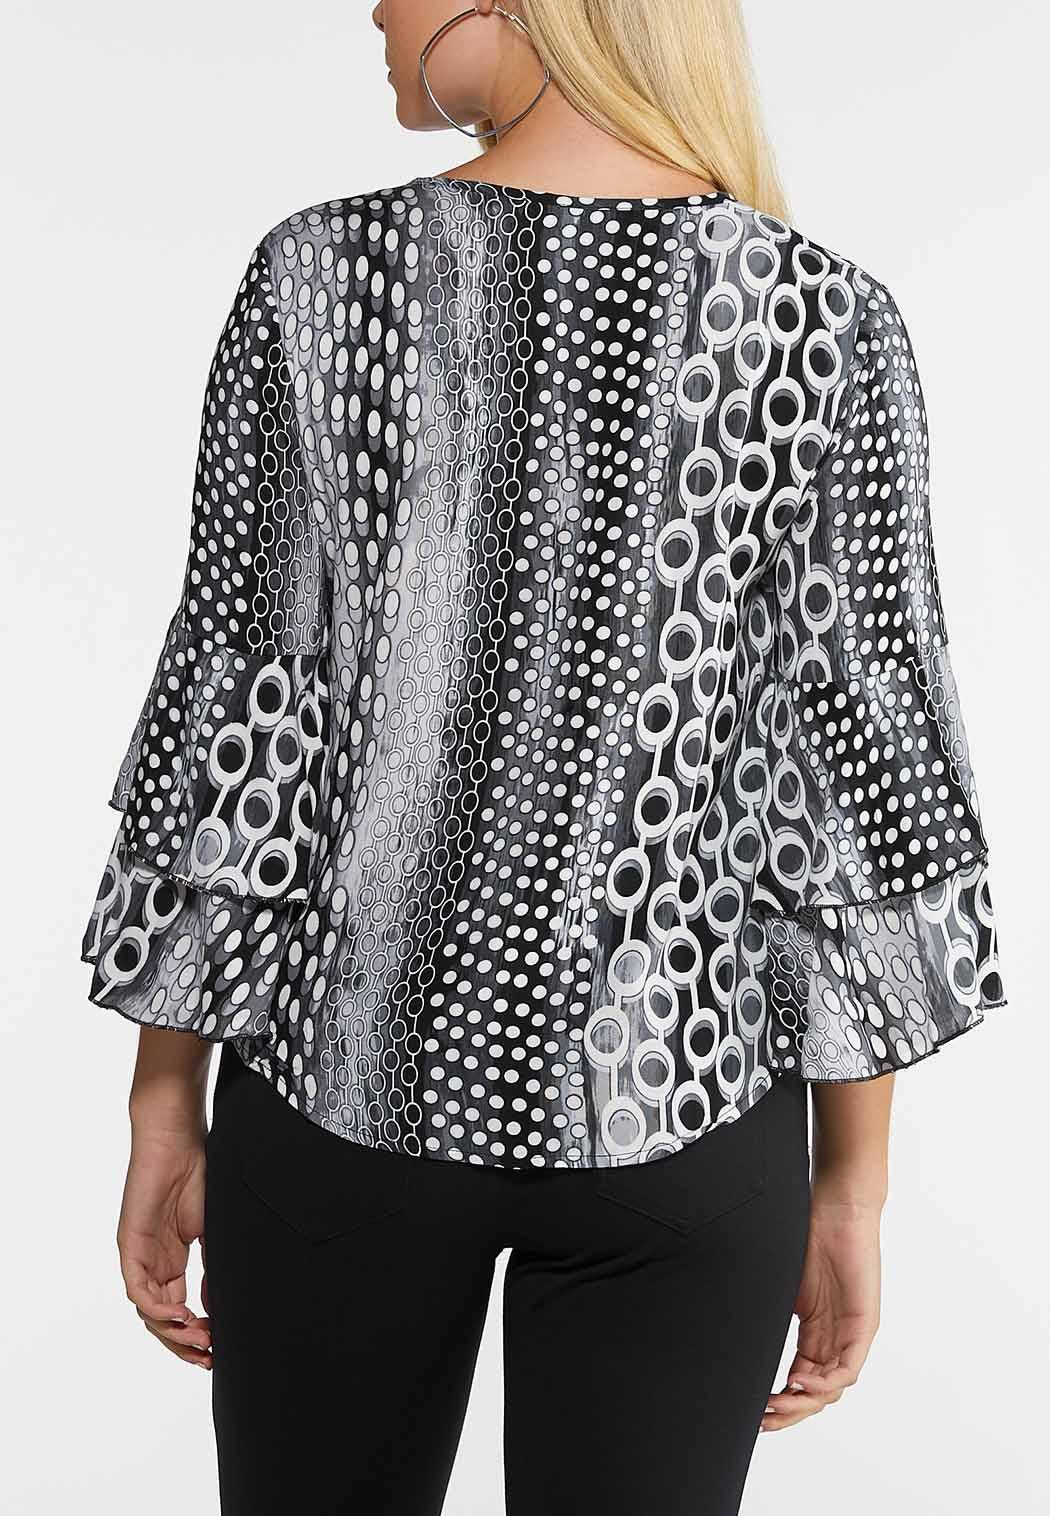 Plus Size Mod Tiered Sleeve Top (Item #43988214)